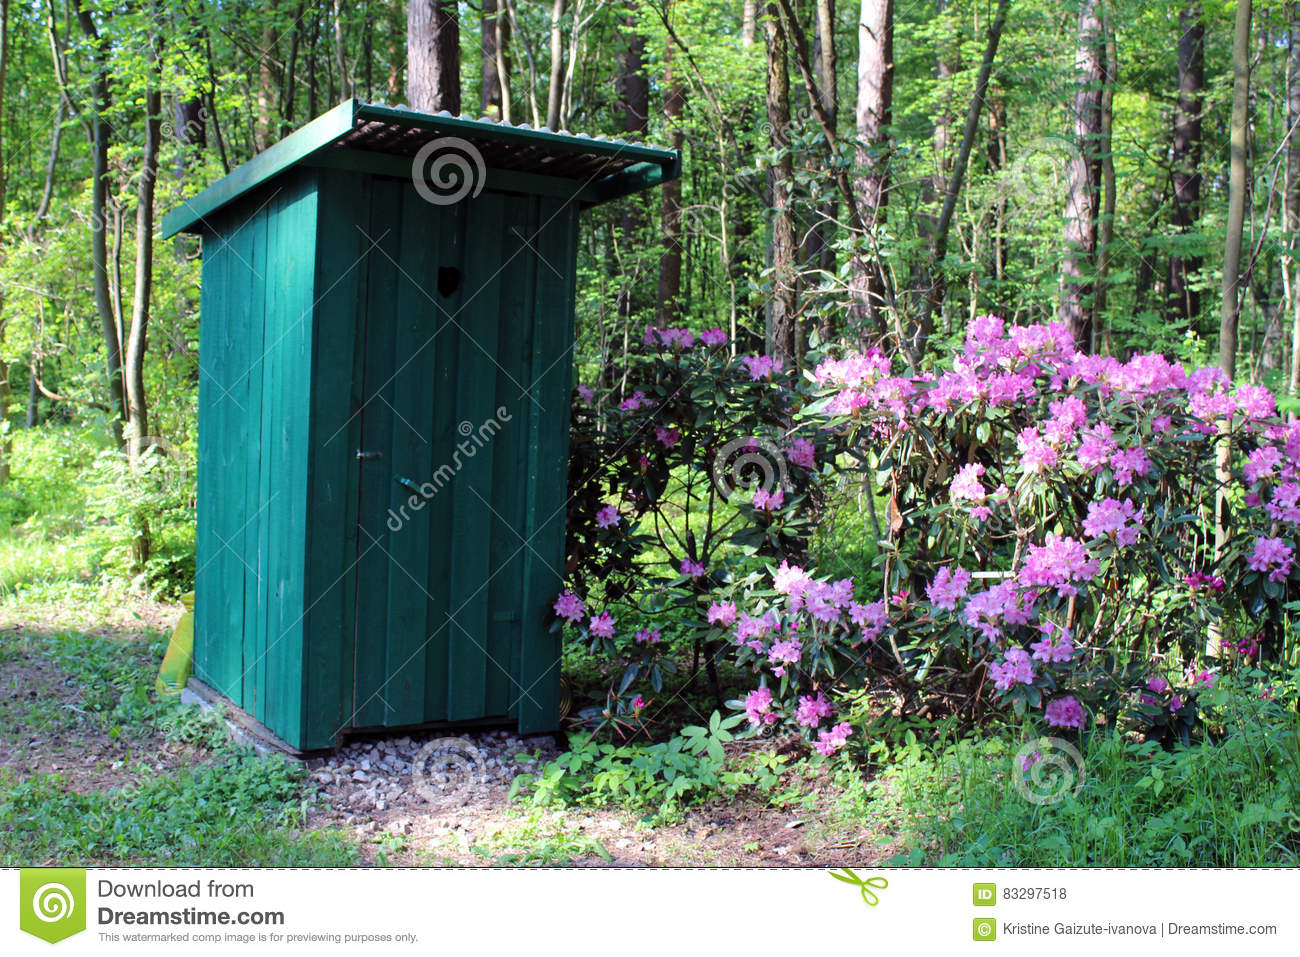 Outhouse in the forest